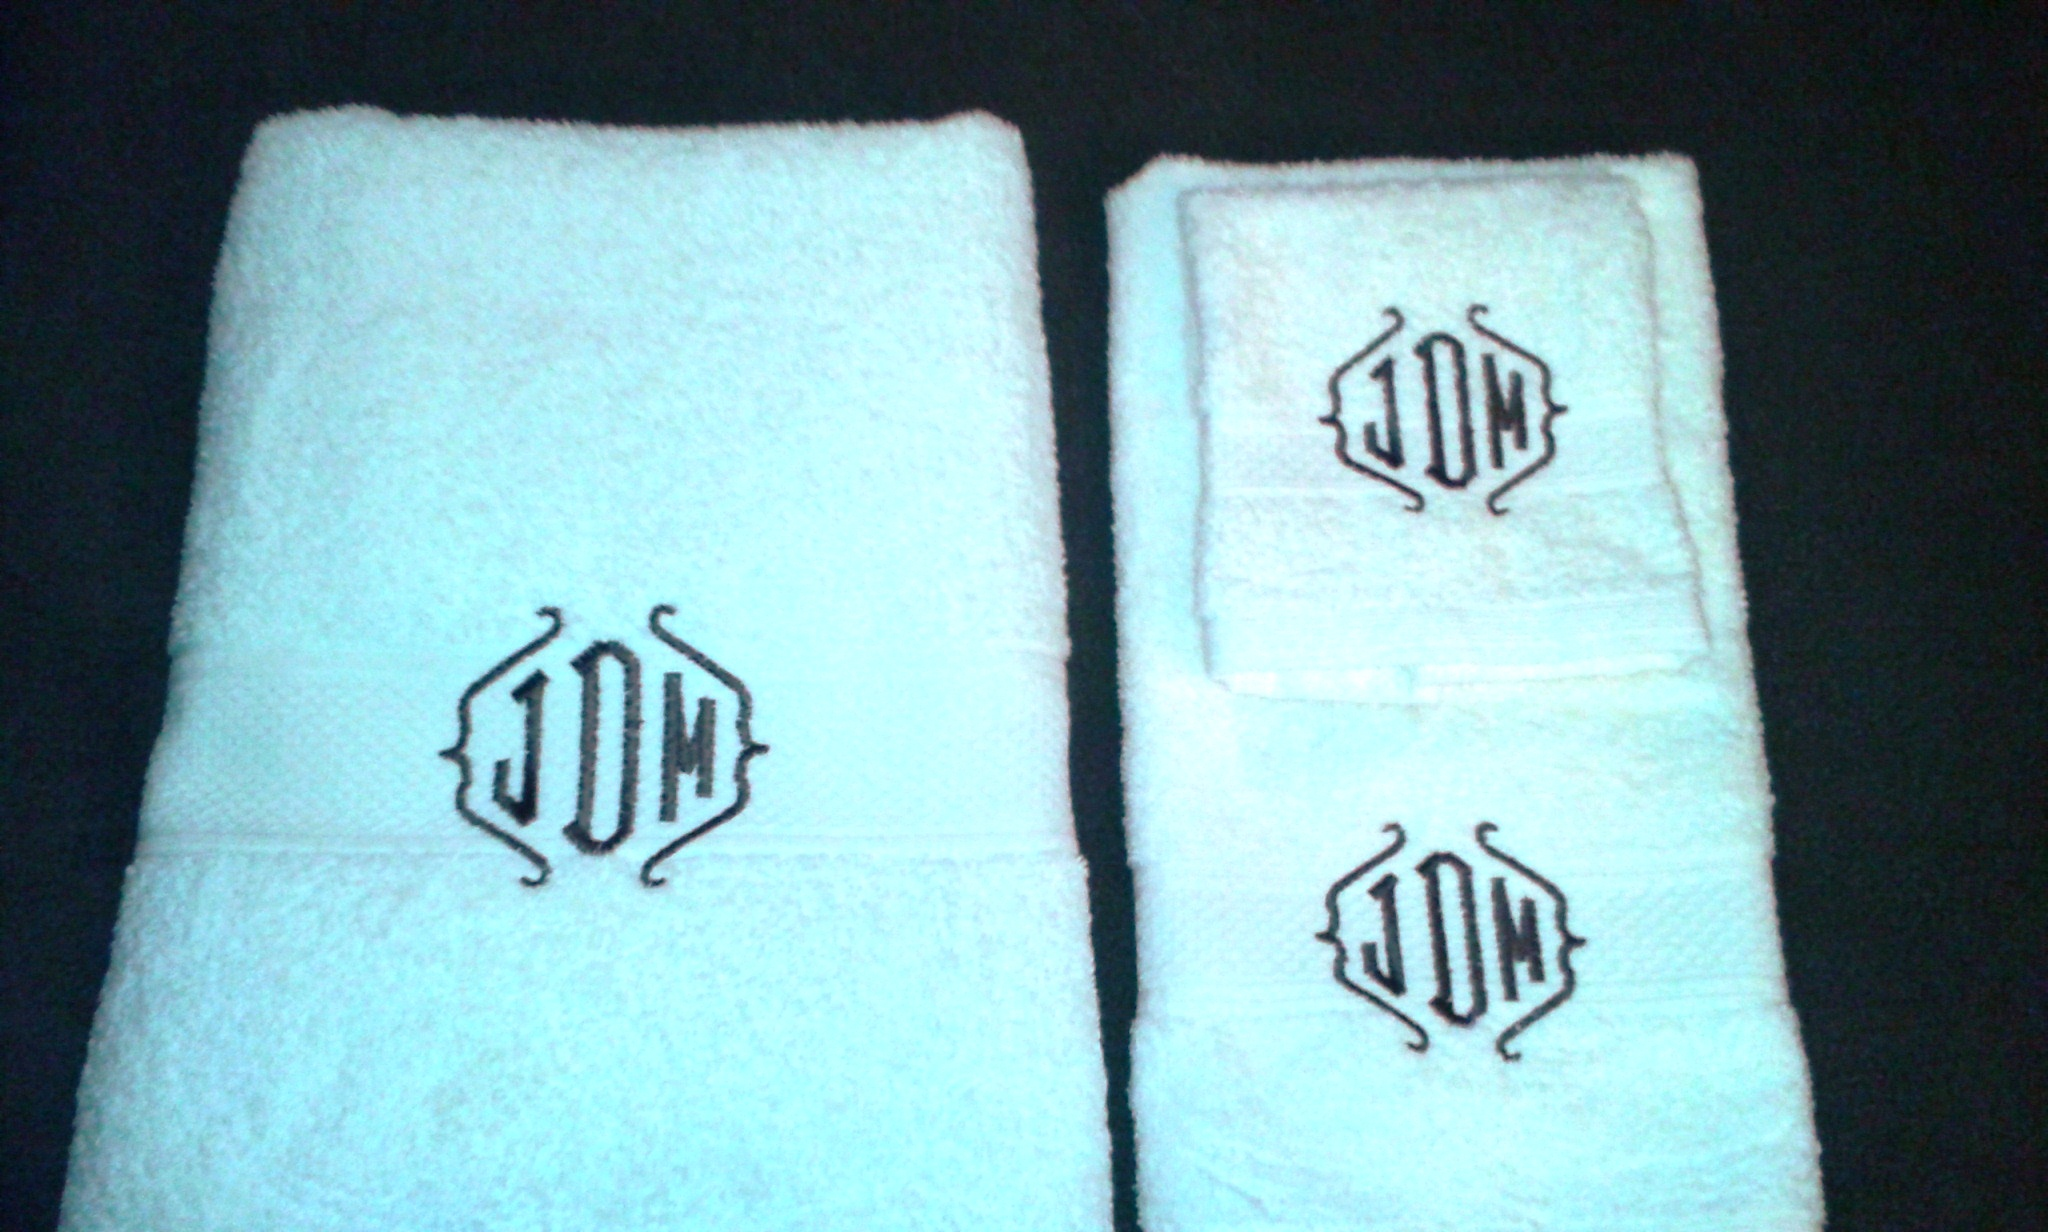 Astounding monogrammed bath towels with personalized towel of monogrammed towel set ideas